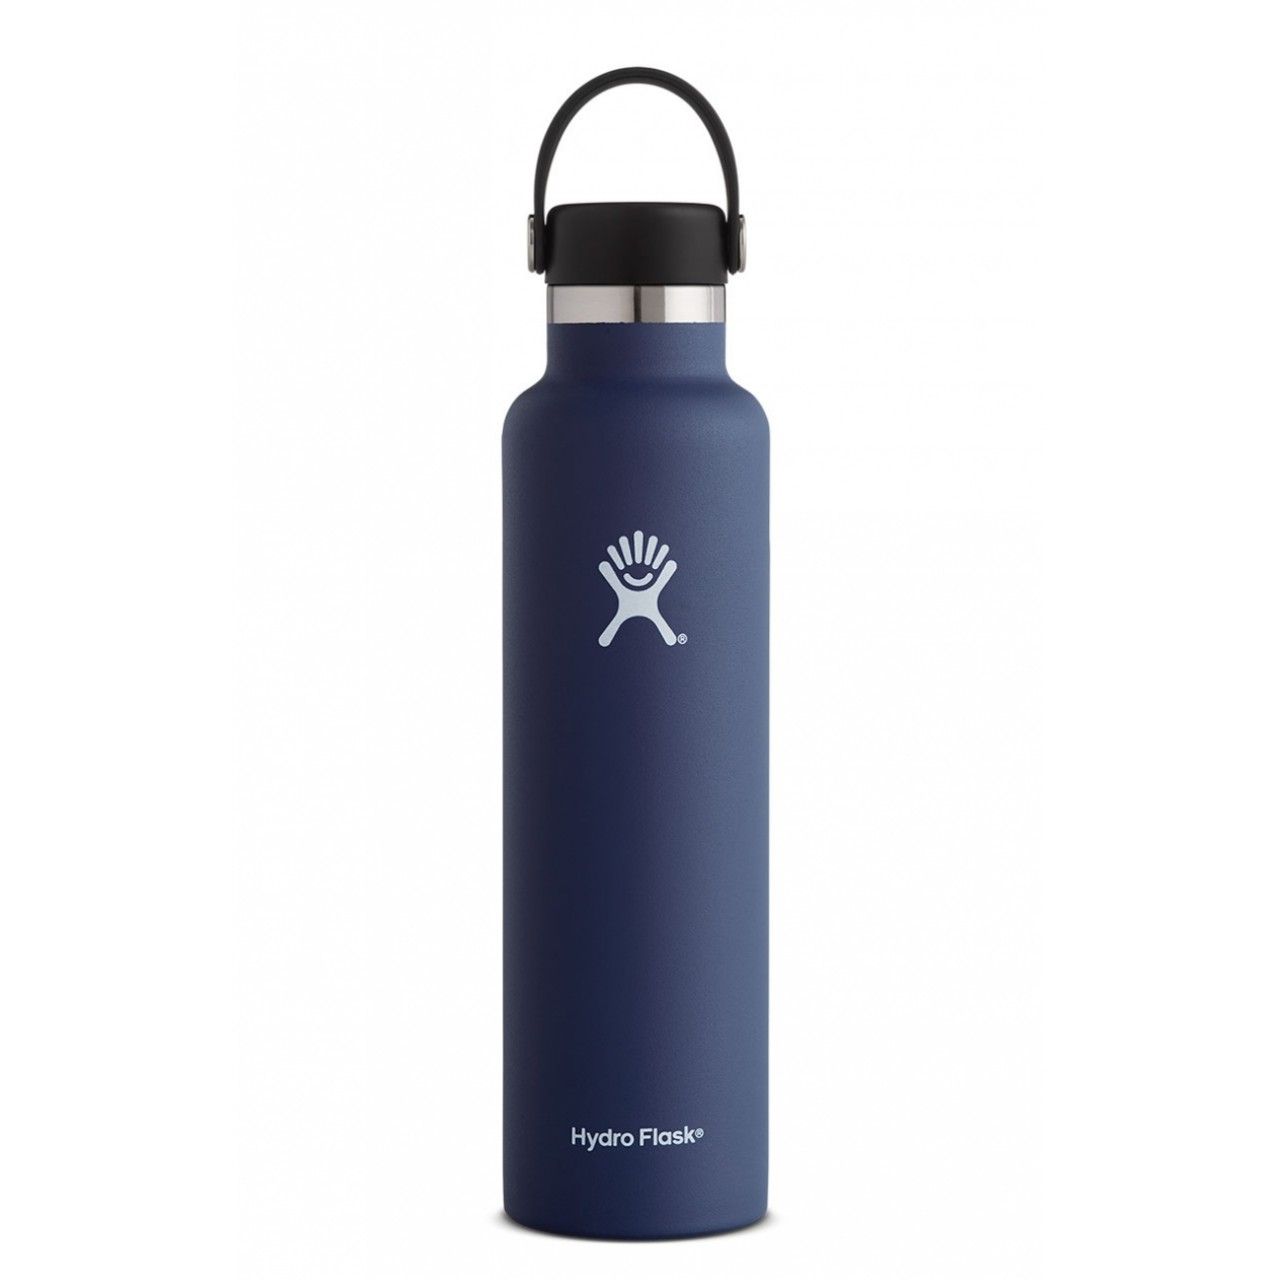 Hydro Flask Insulated Water Bottle 24oz Standard Mouth